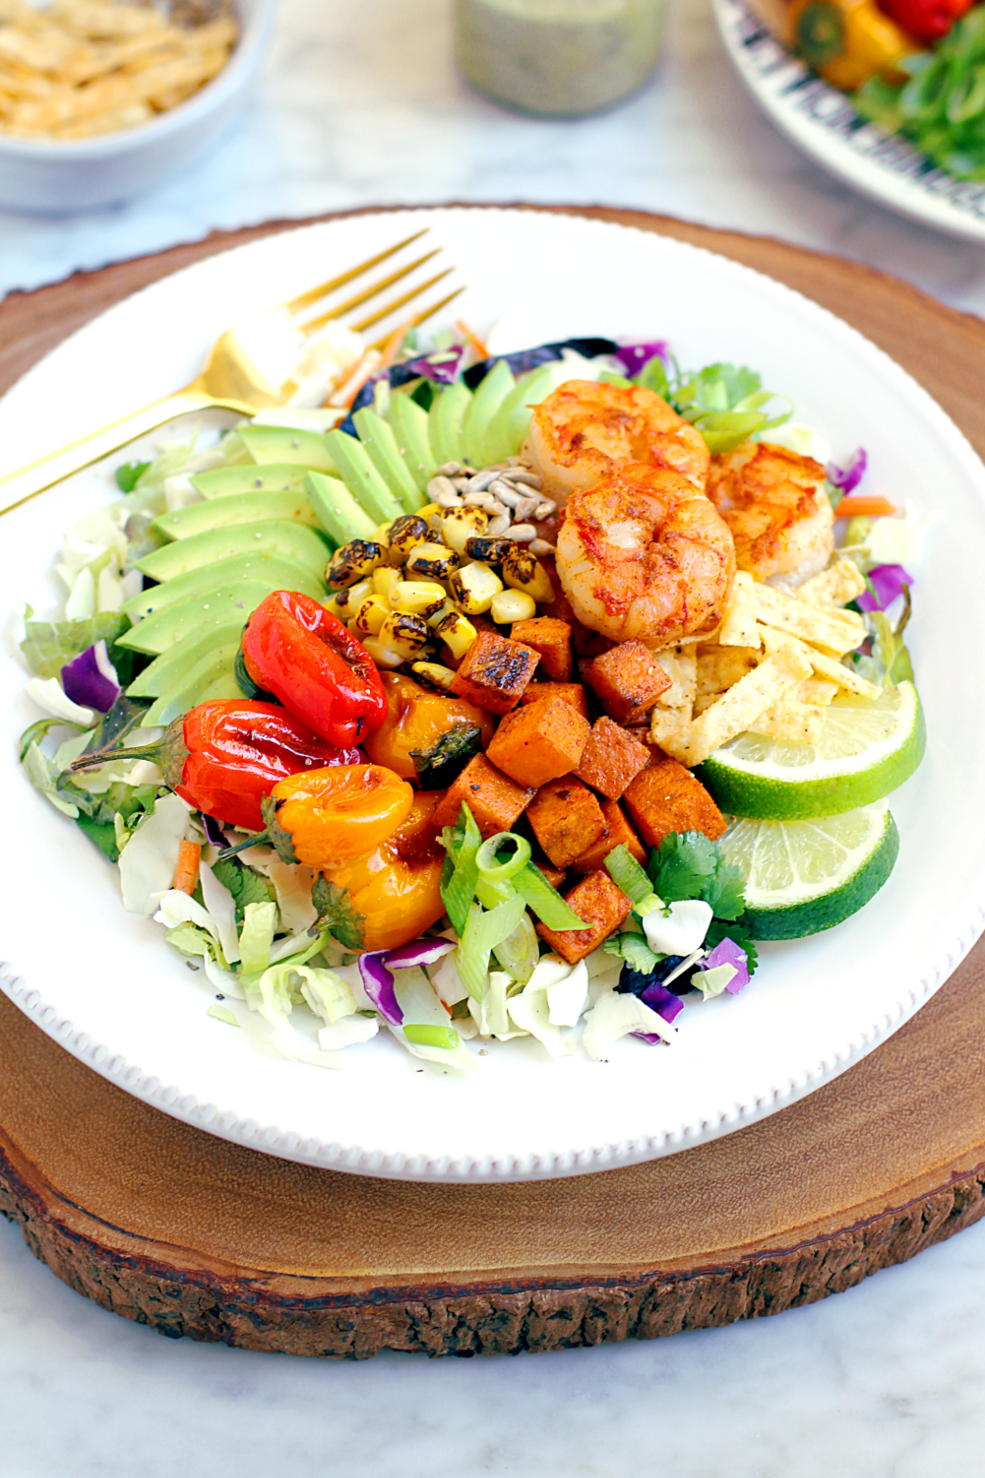 Image of Southwestern shrimp salad.